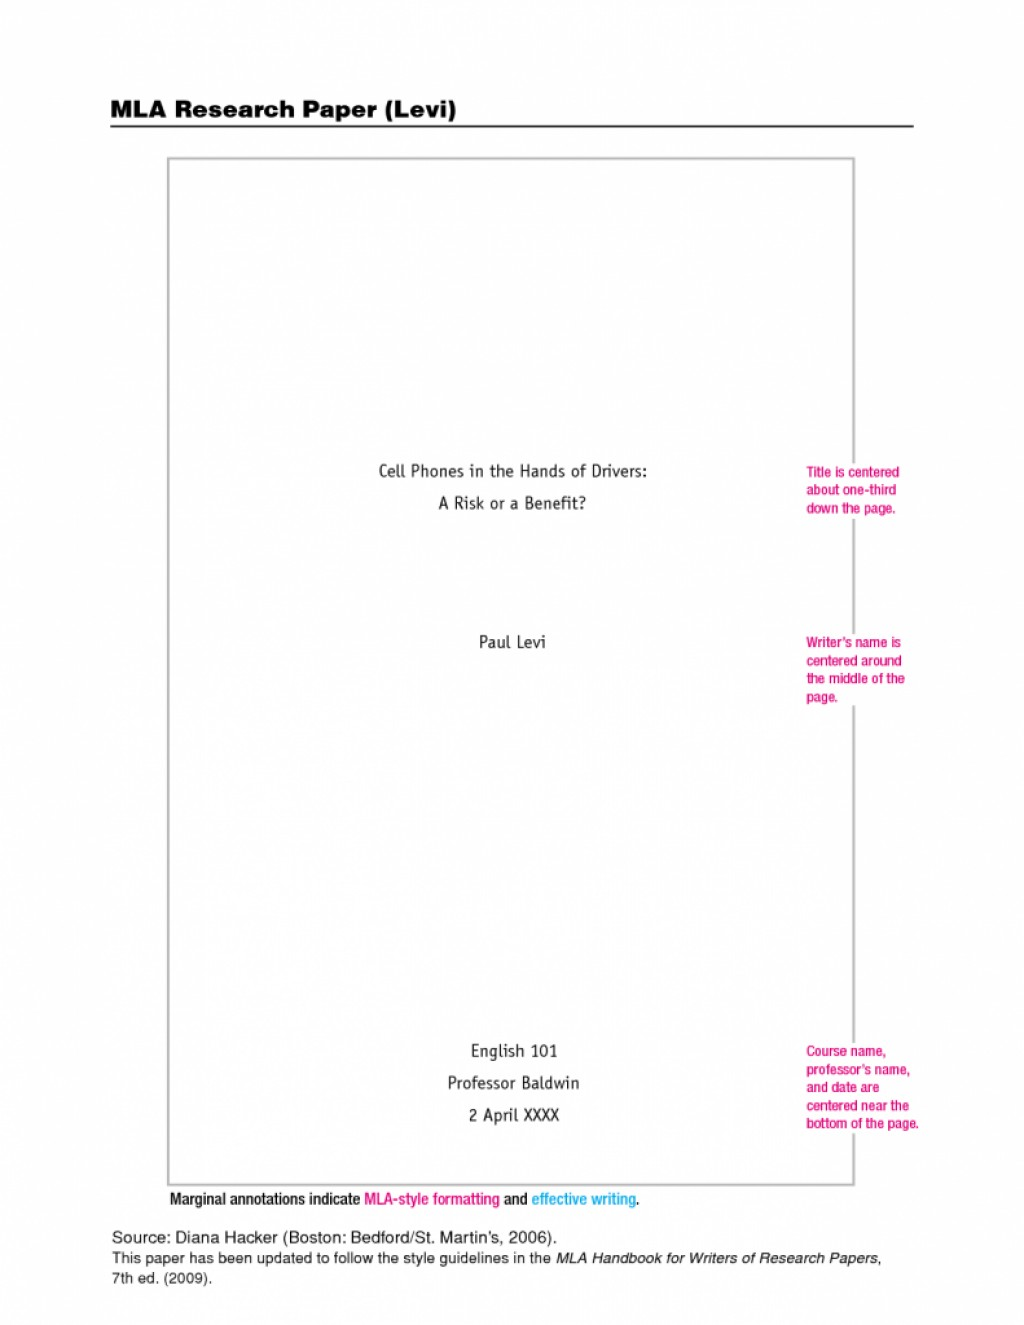 017 Awesome Collection Of Mla Cover Page Format Research Paper For Sample 791x1024 Formidable Sheet Example Harvard Large